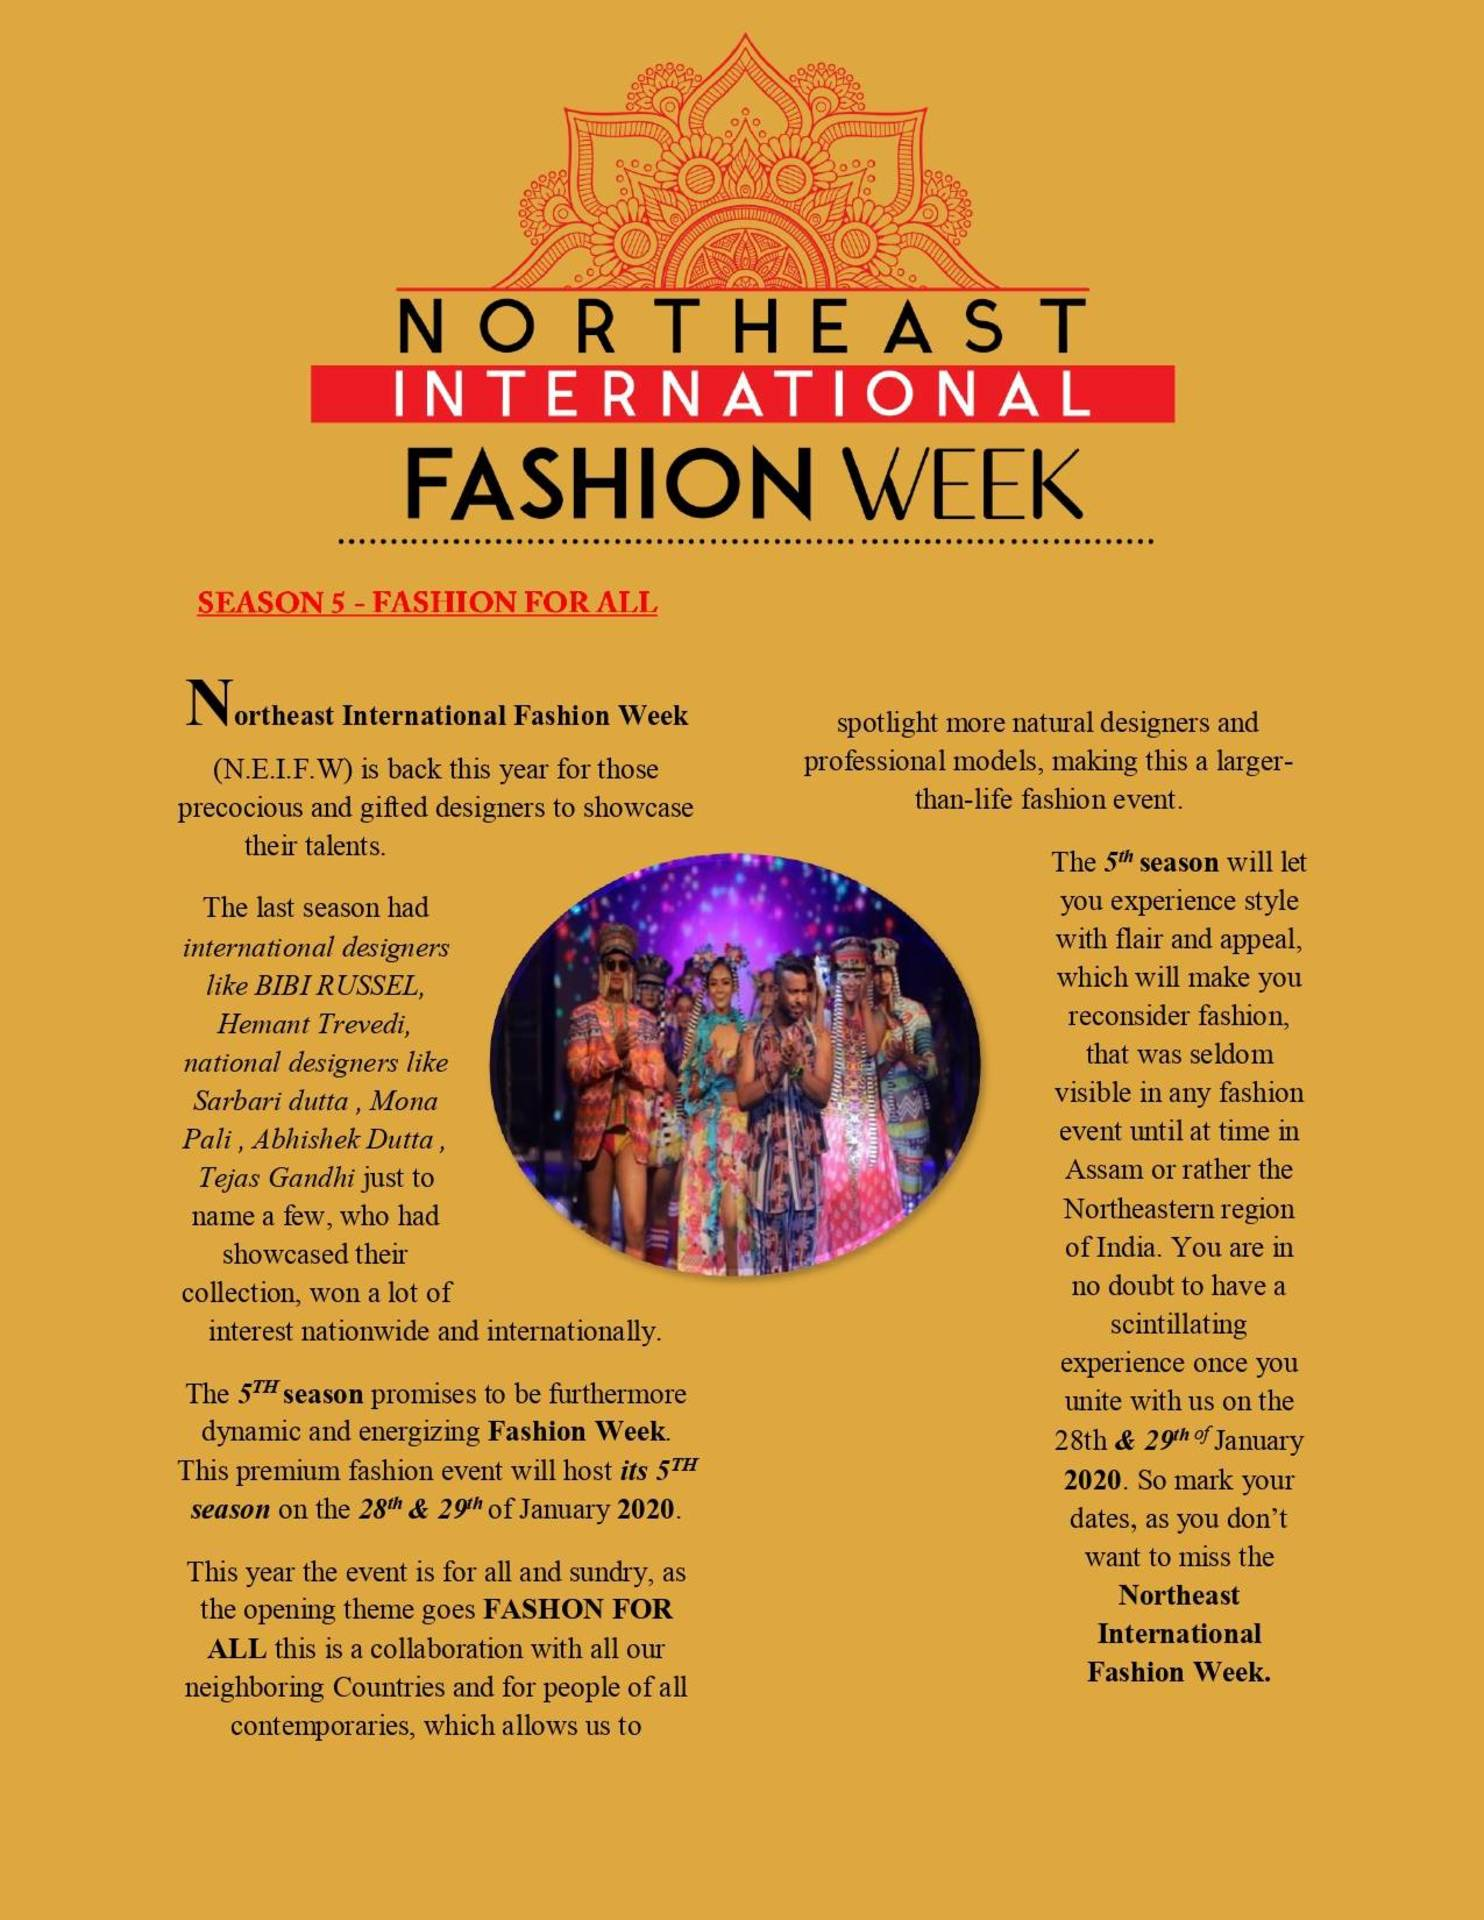 NORTHEAST INTERNATIONAL FASHION WEEK image